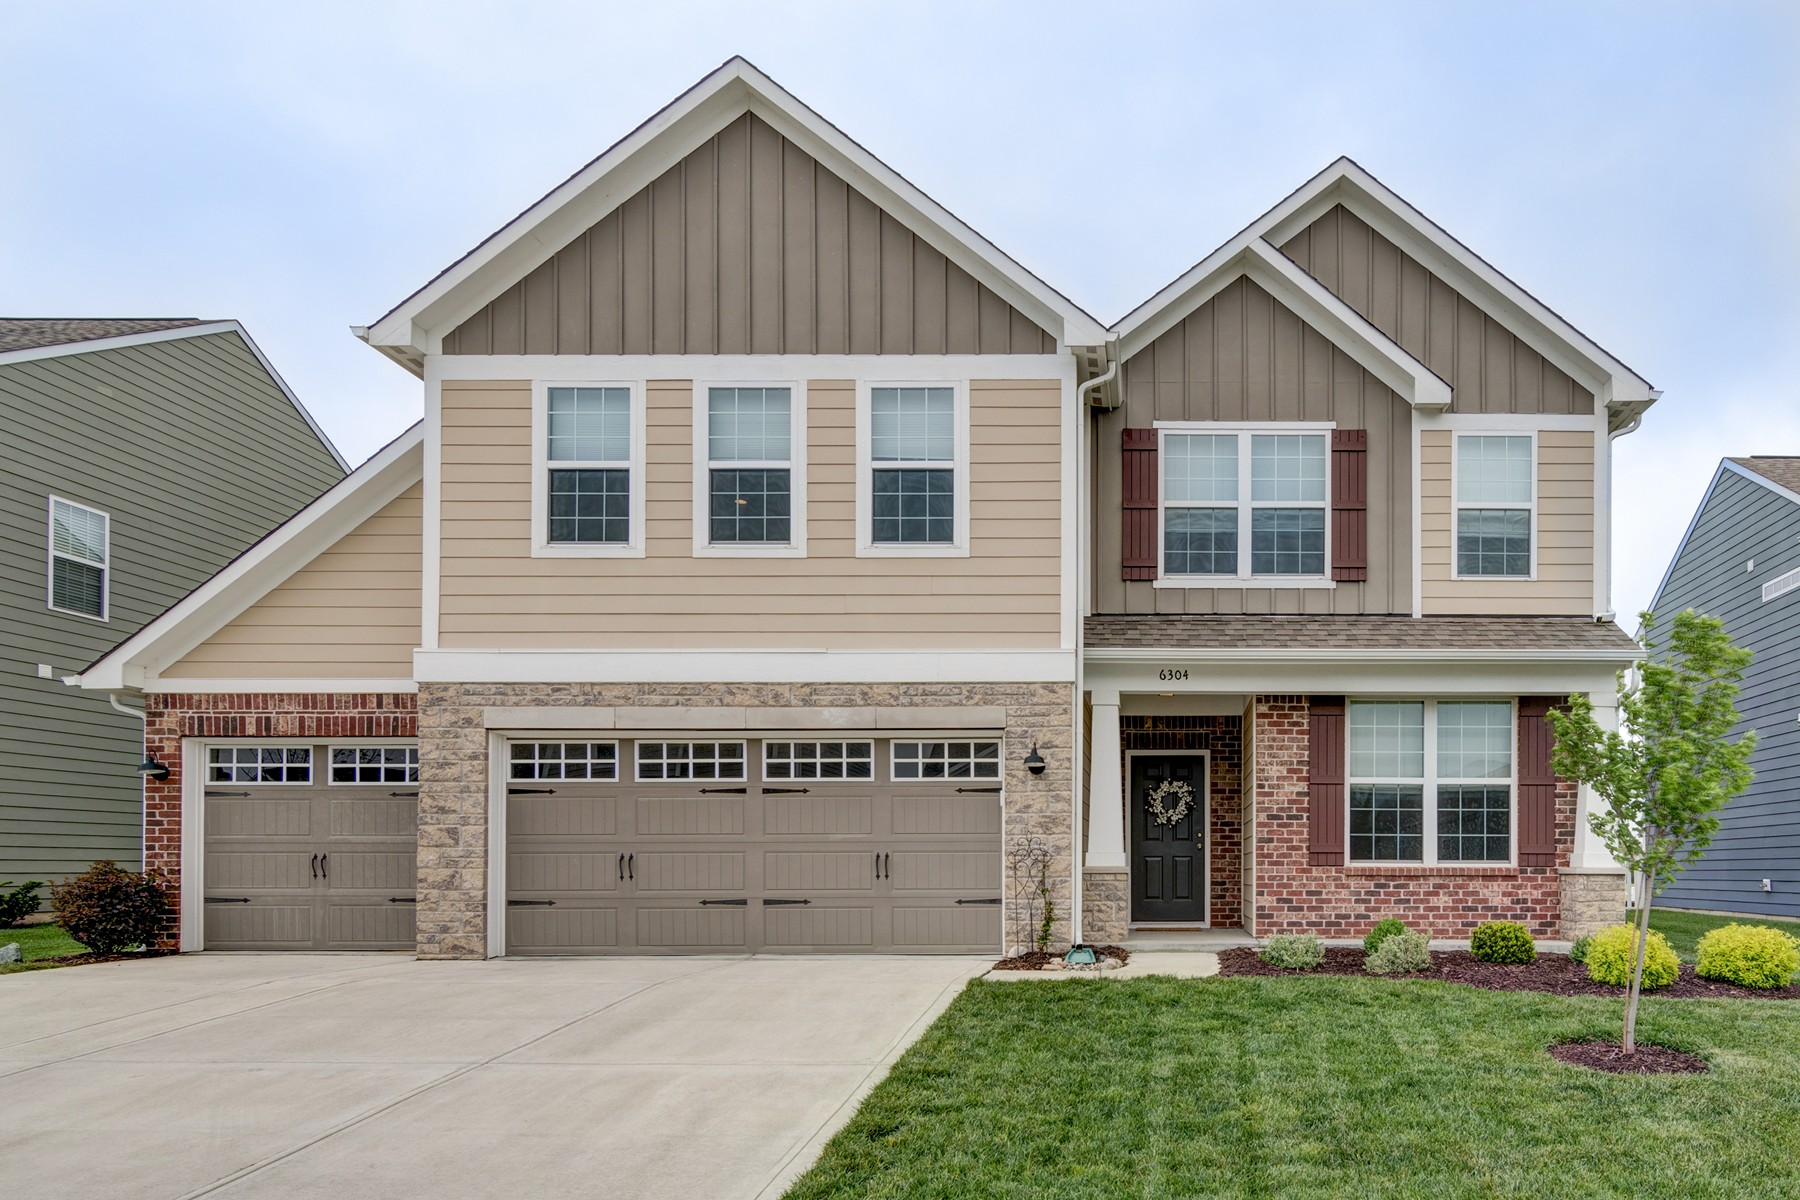 Single Family Home for Sale at Delightful, Like New Home 6304 Meadowview Drive Whitestown, Indiana 46075 United States